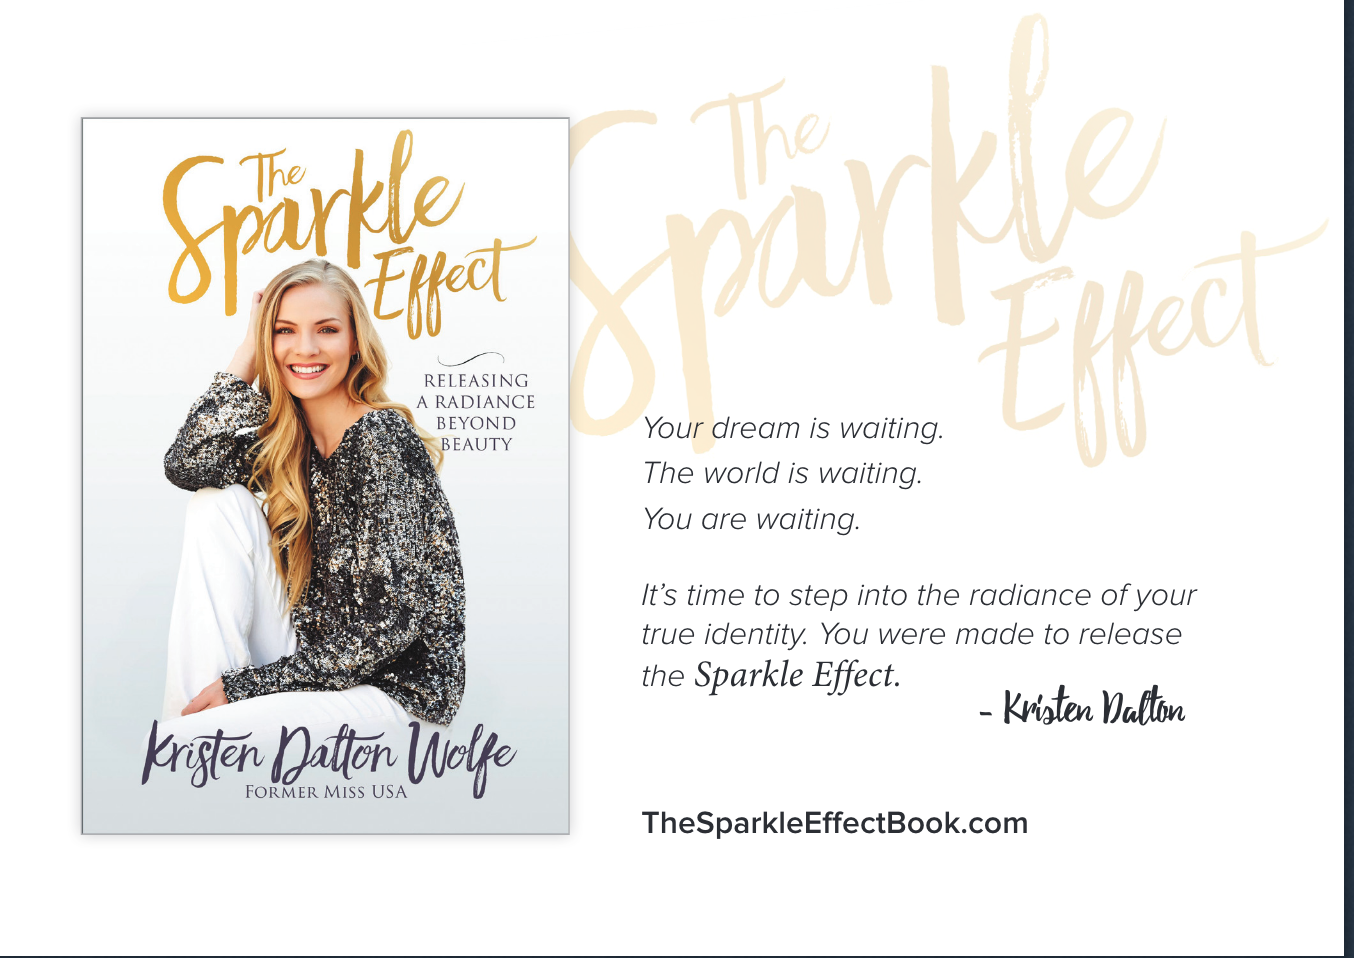 Kristen Dalton's The Sparkle Effect Book